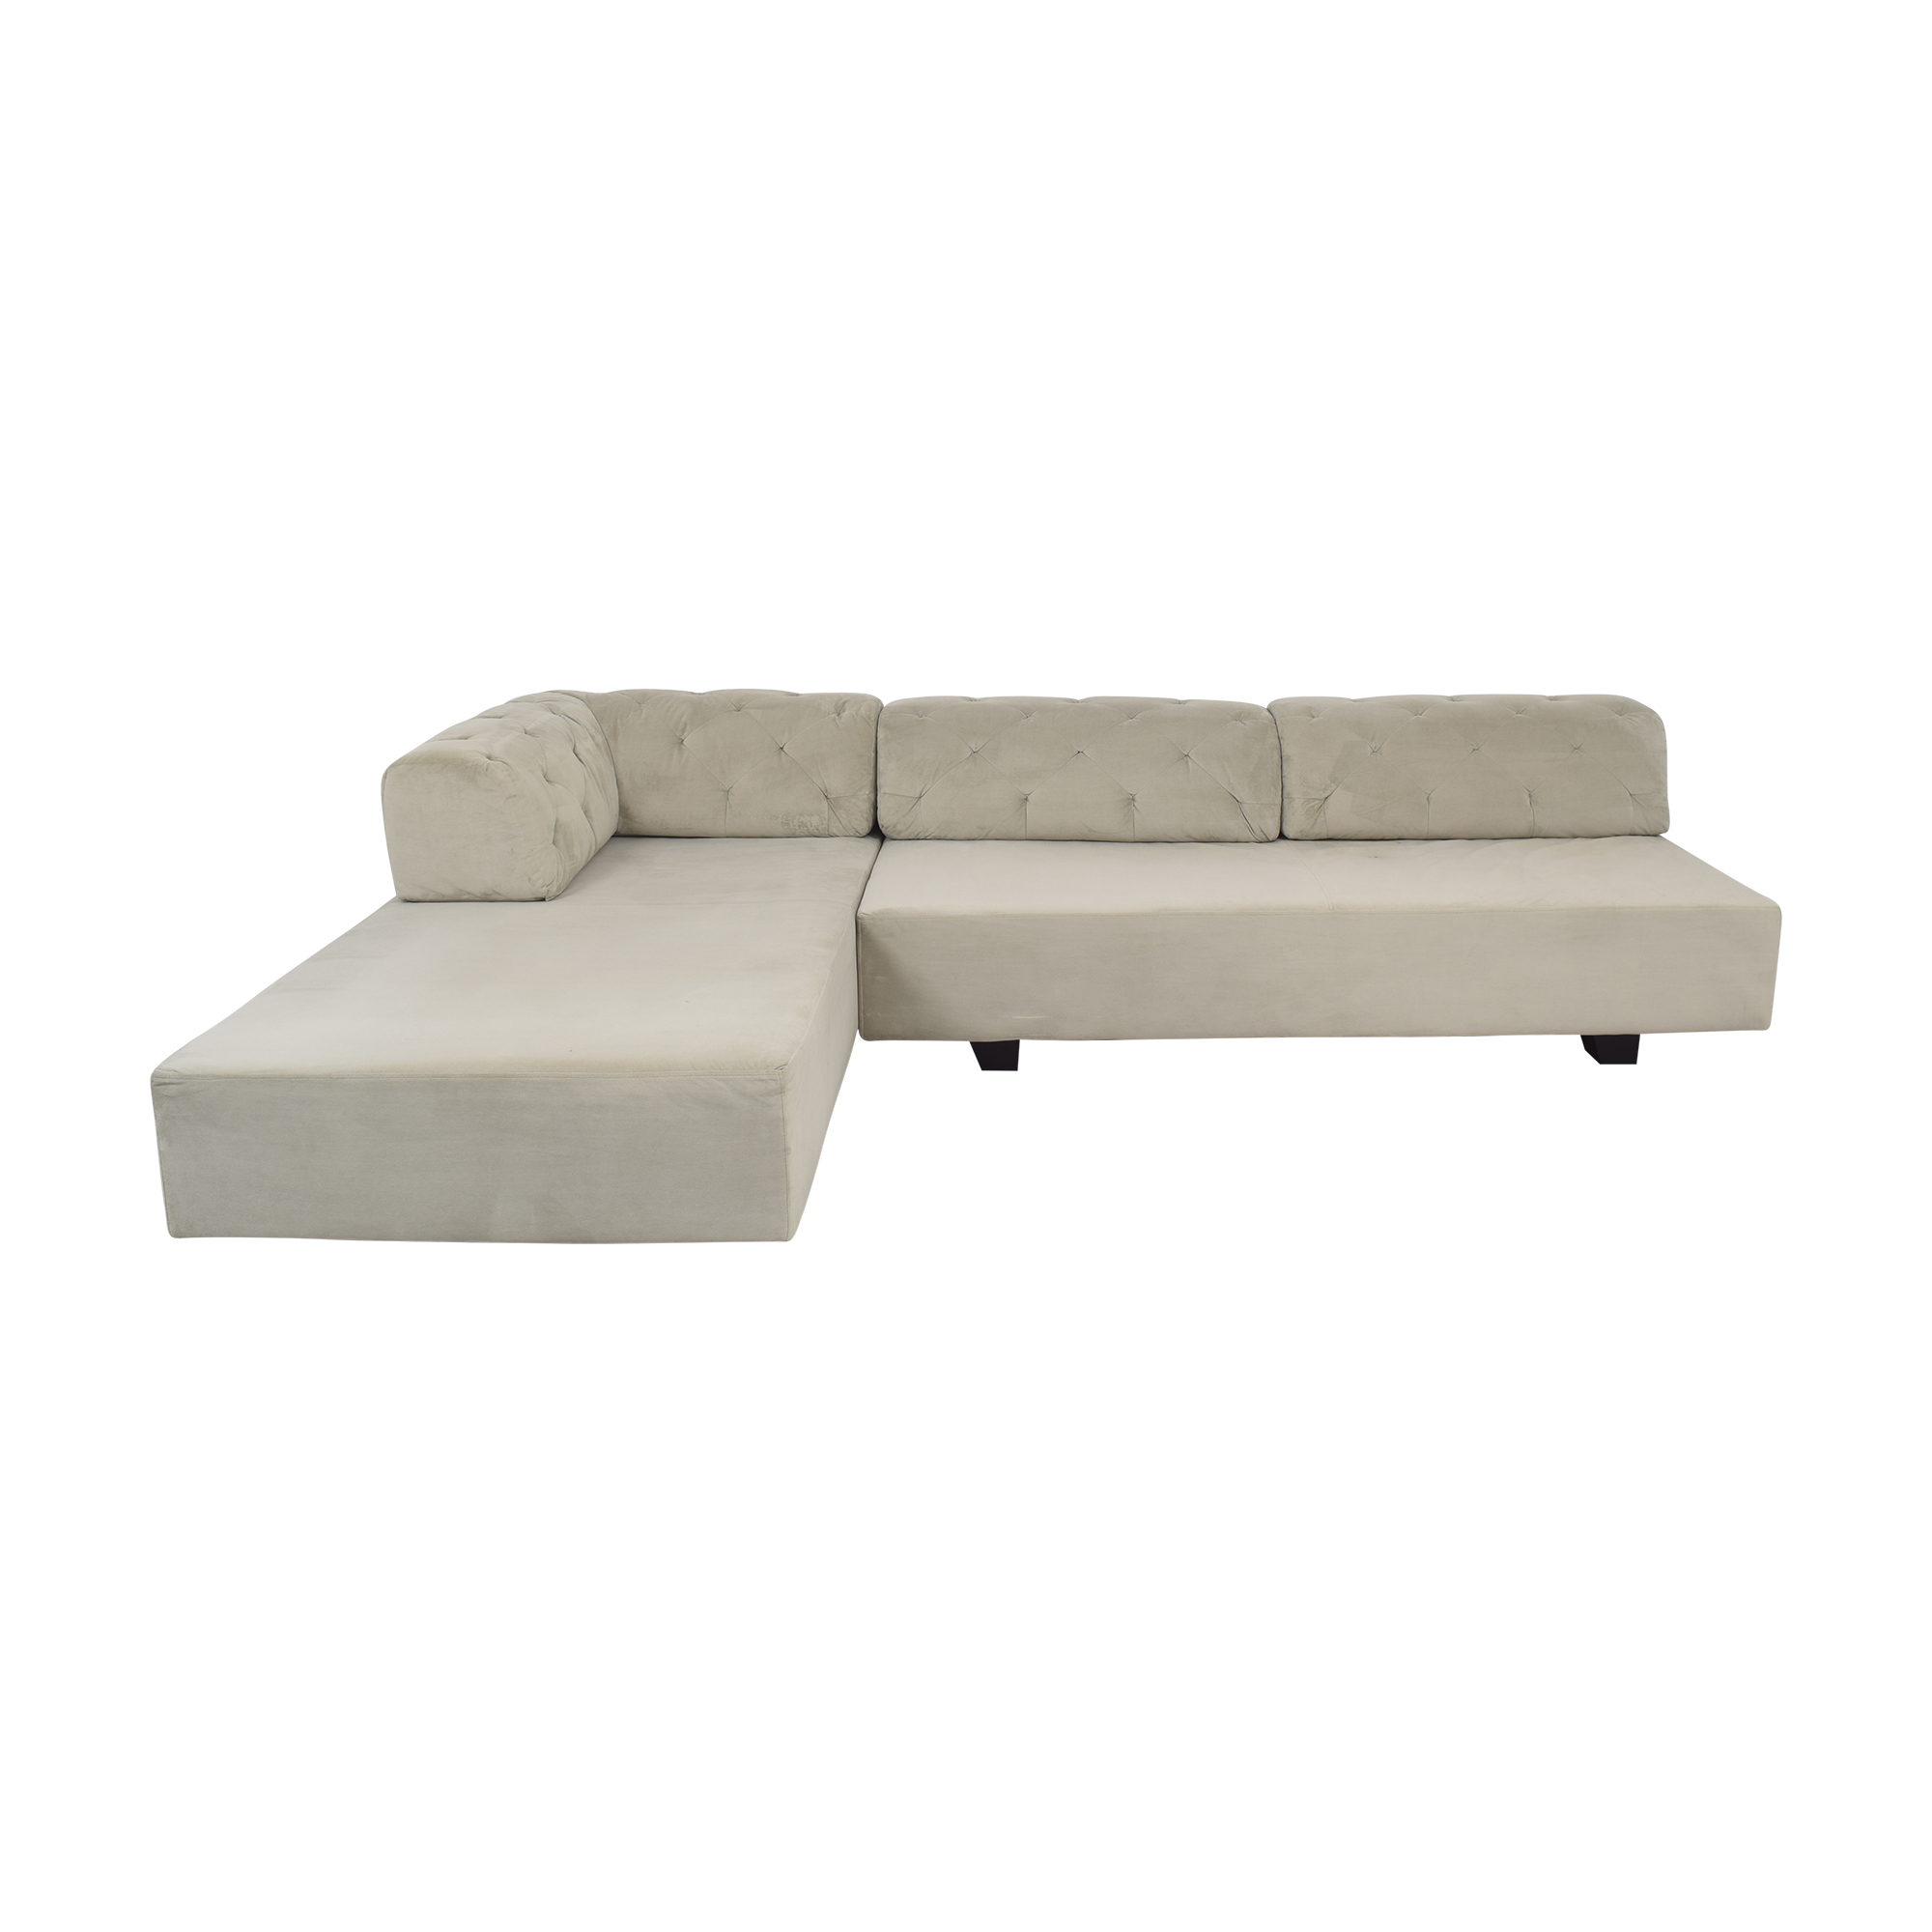 West Elm West Elm Tillary Tufted Sectional Sofa discount